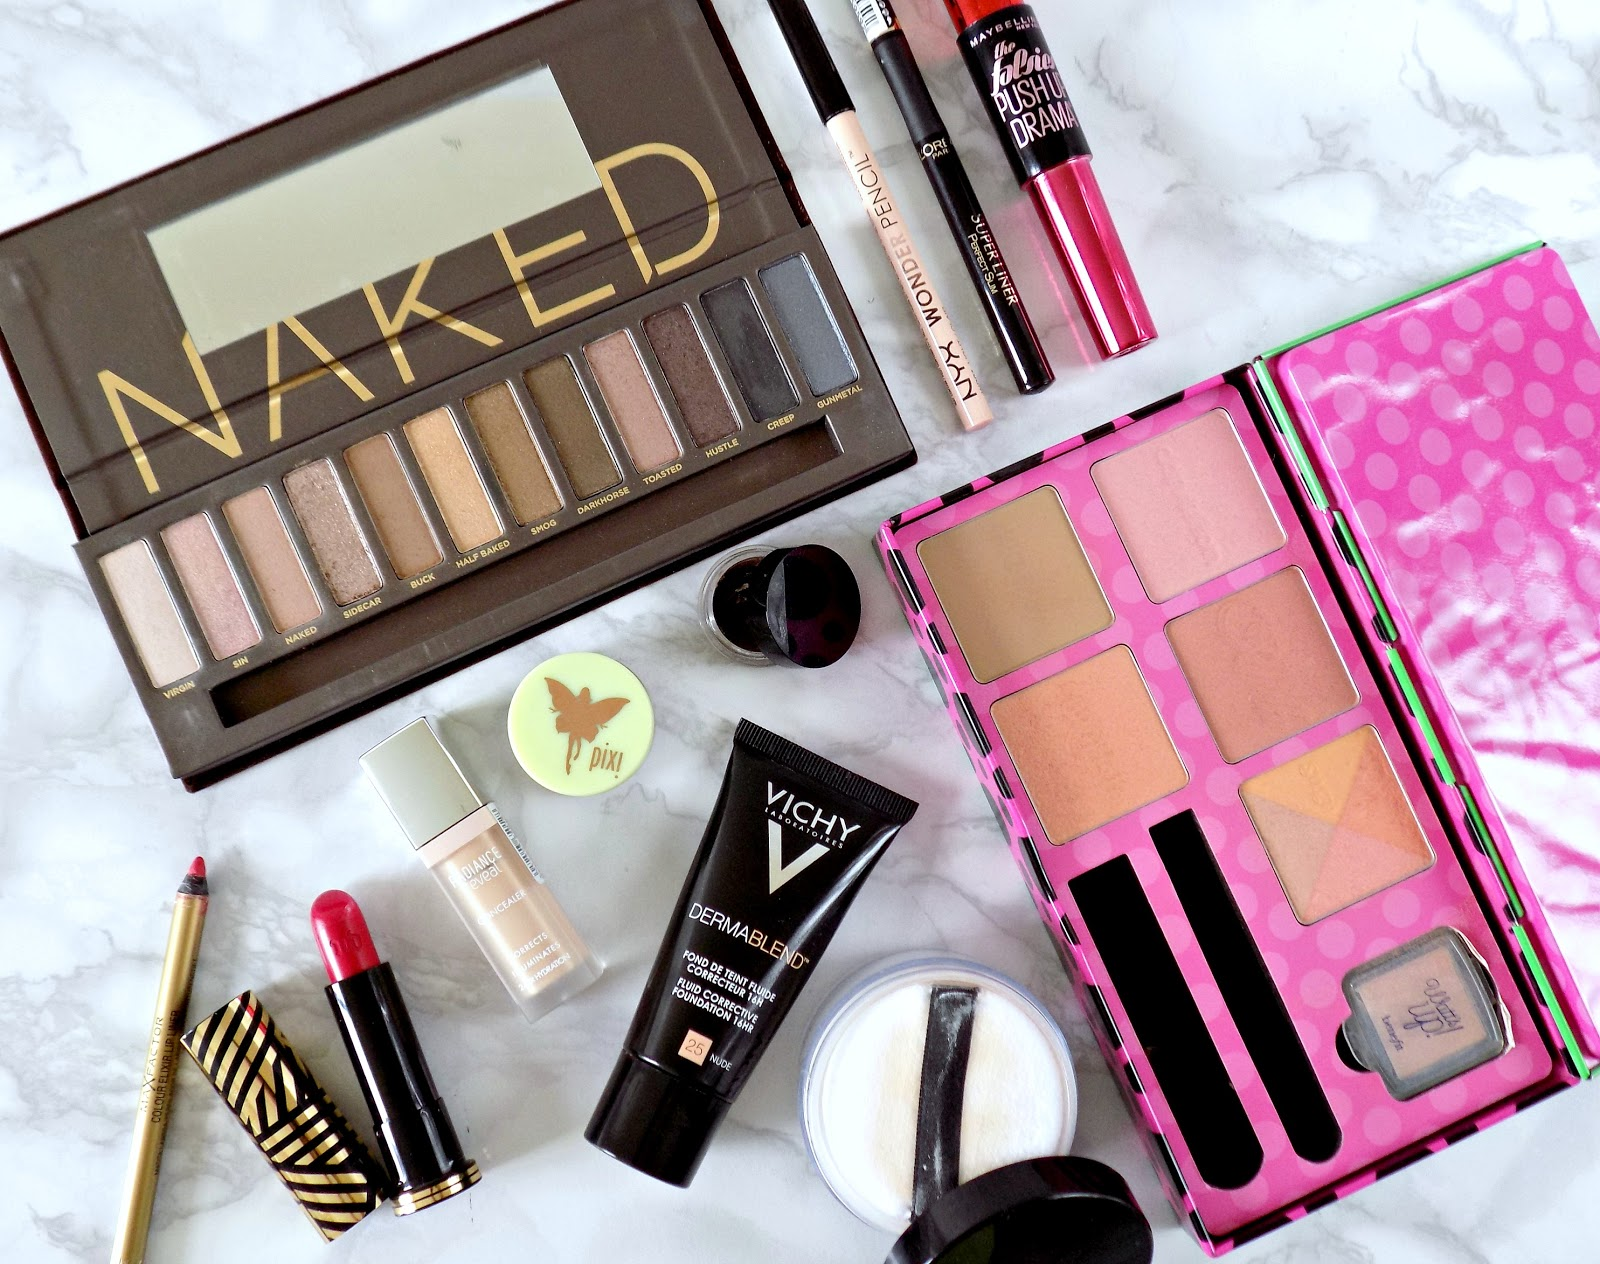 Makeup look using Urban Decay Naked palette